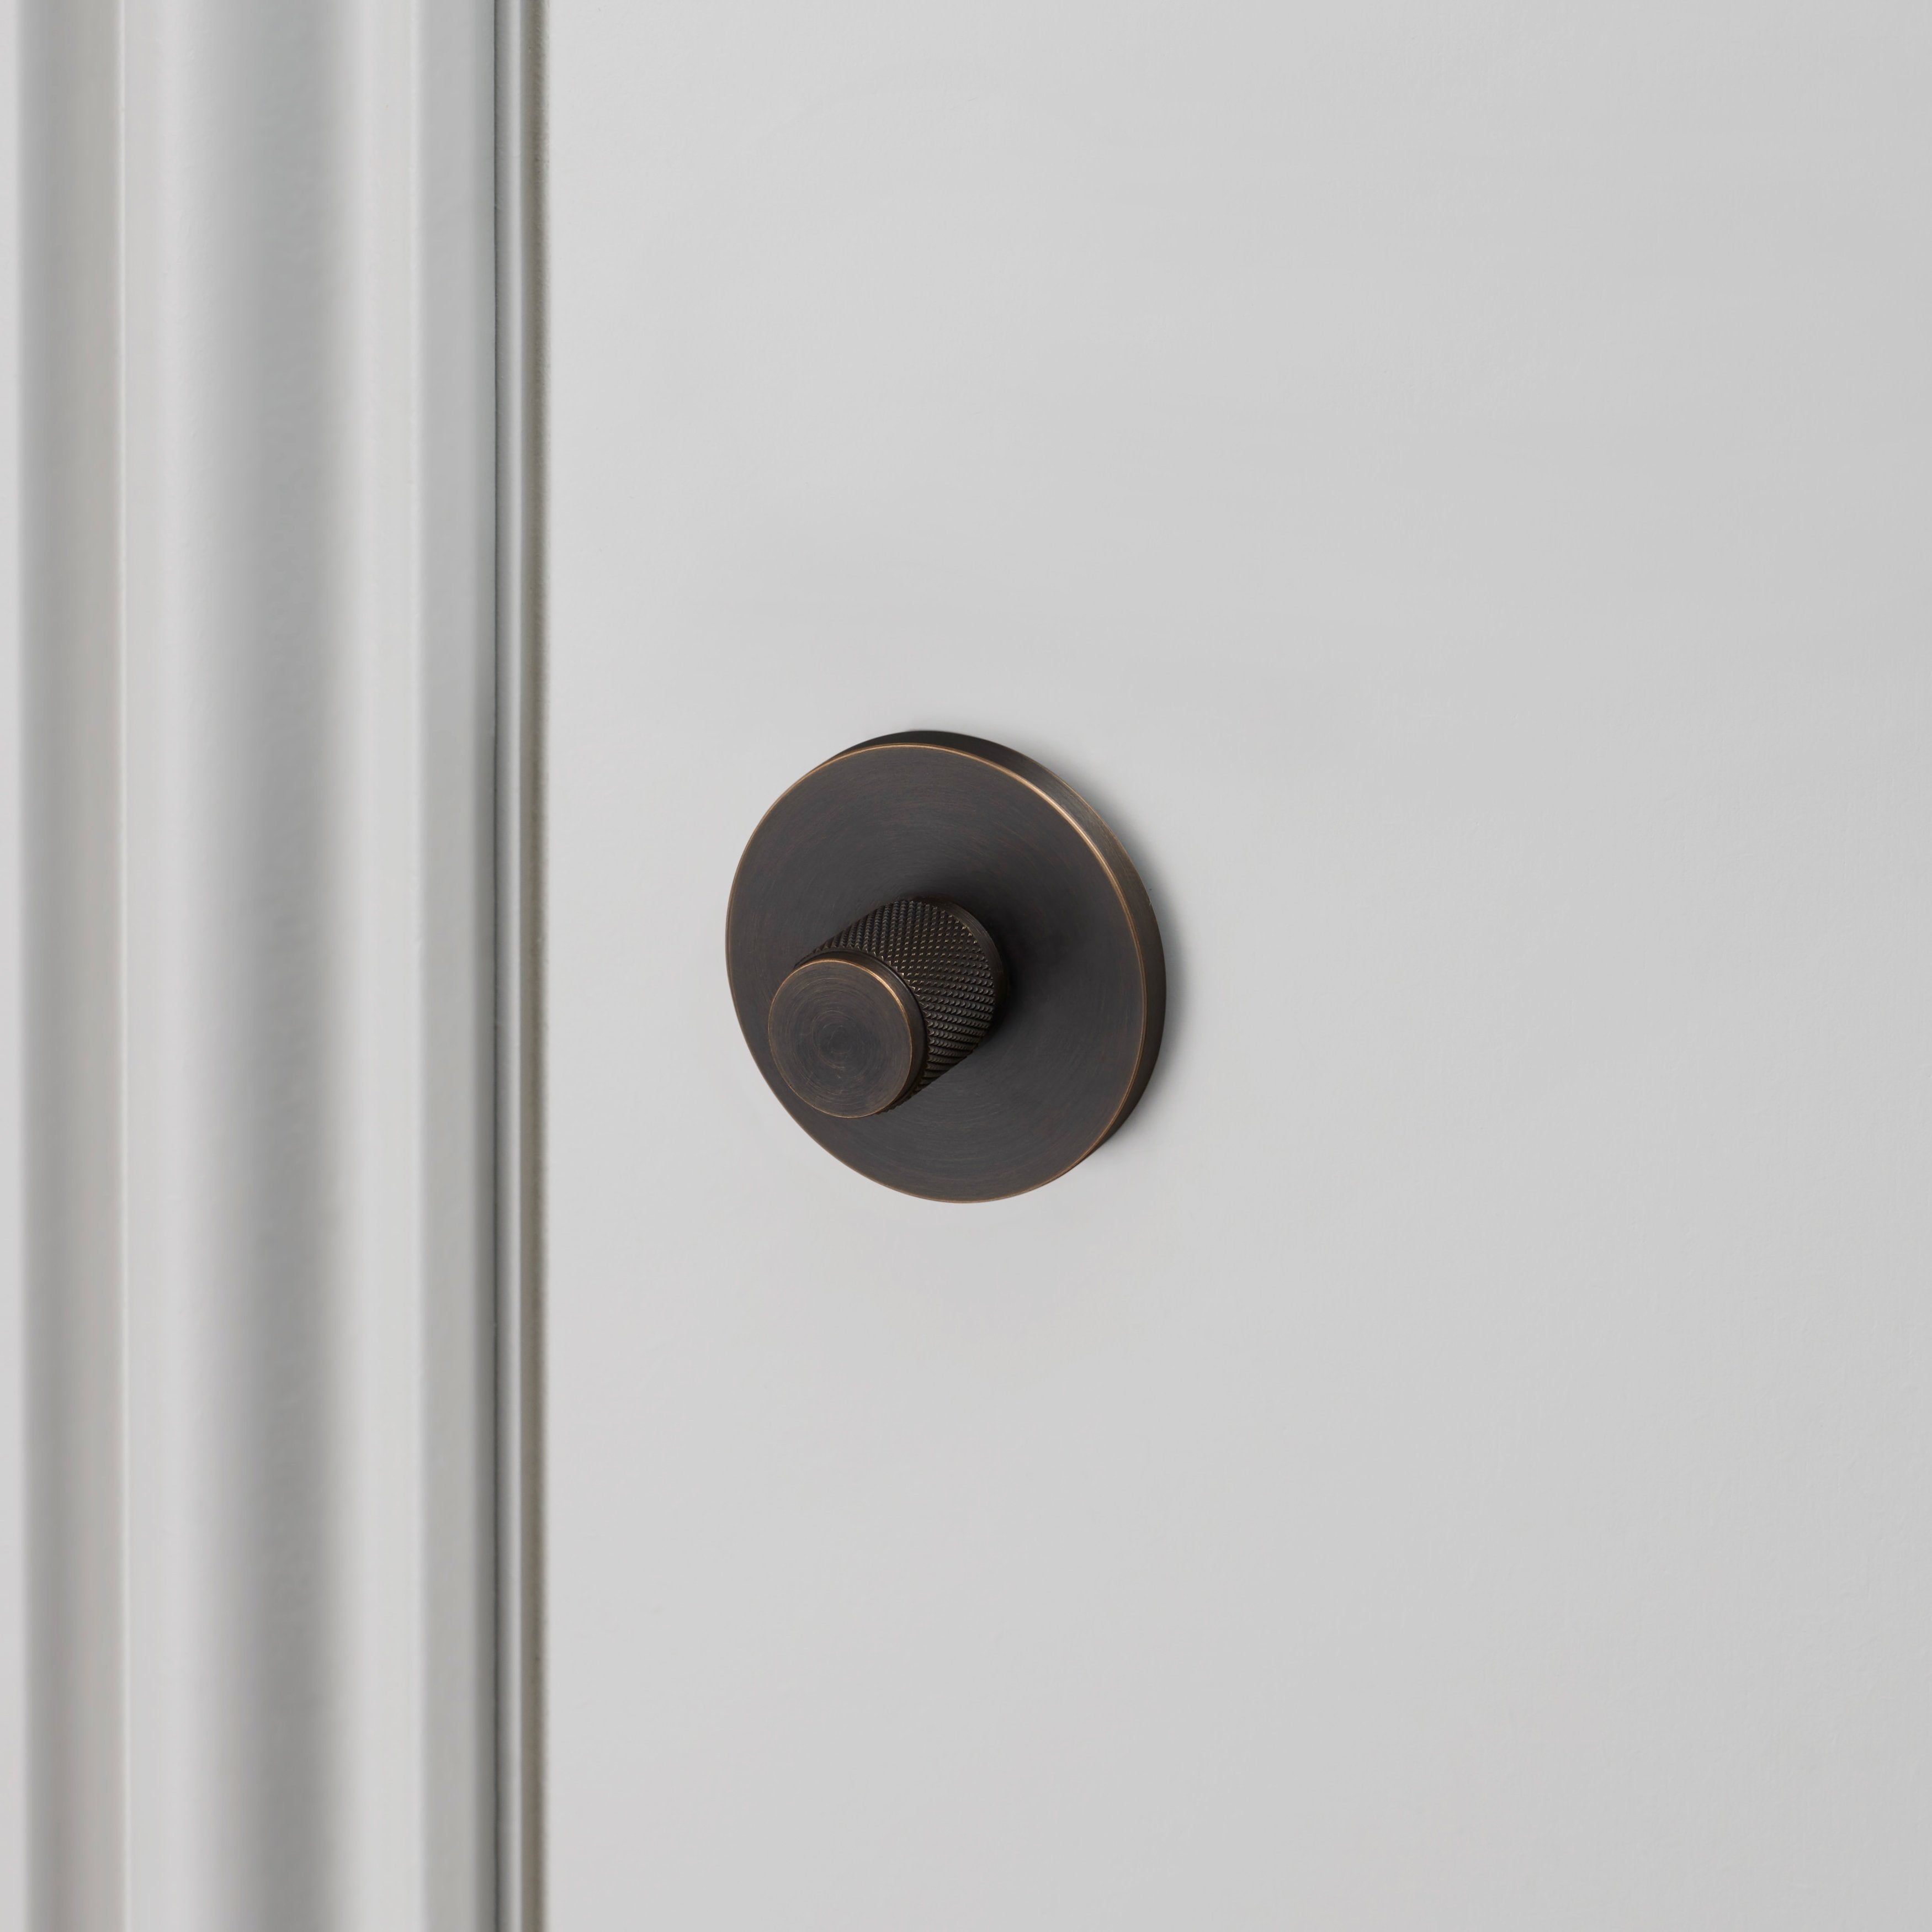 THUMBTURN LOCK / SMOKED BRONZE  - 38MM - No.42 Interiors